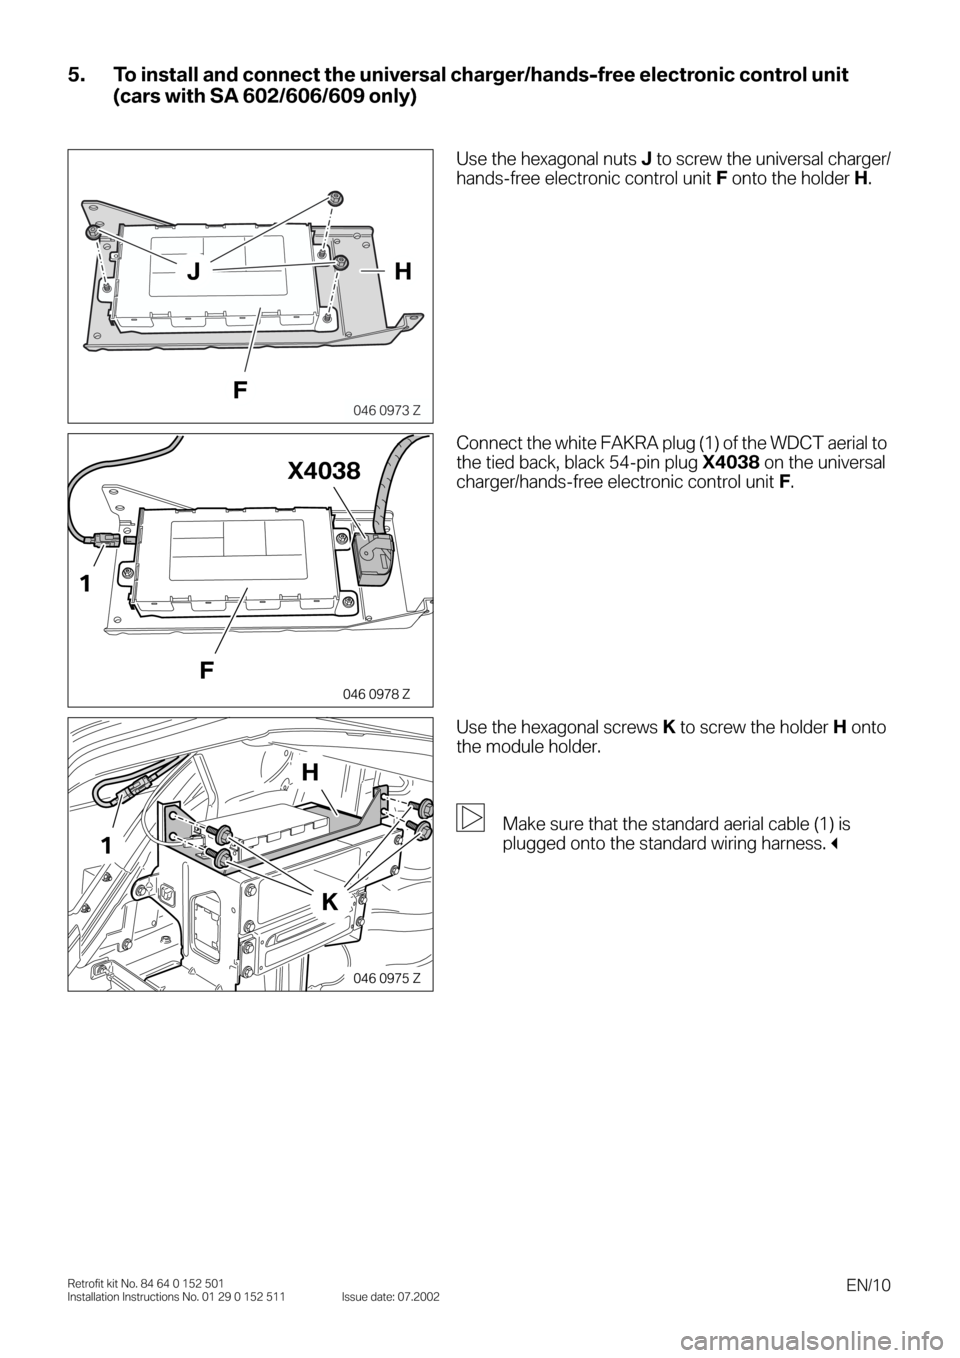 BMW 3 SERIES 2003 E46 Bluetooth Hadsfree Kit Upgrade Installation Instruction Manual, Page 10